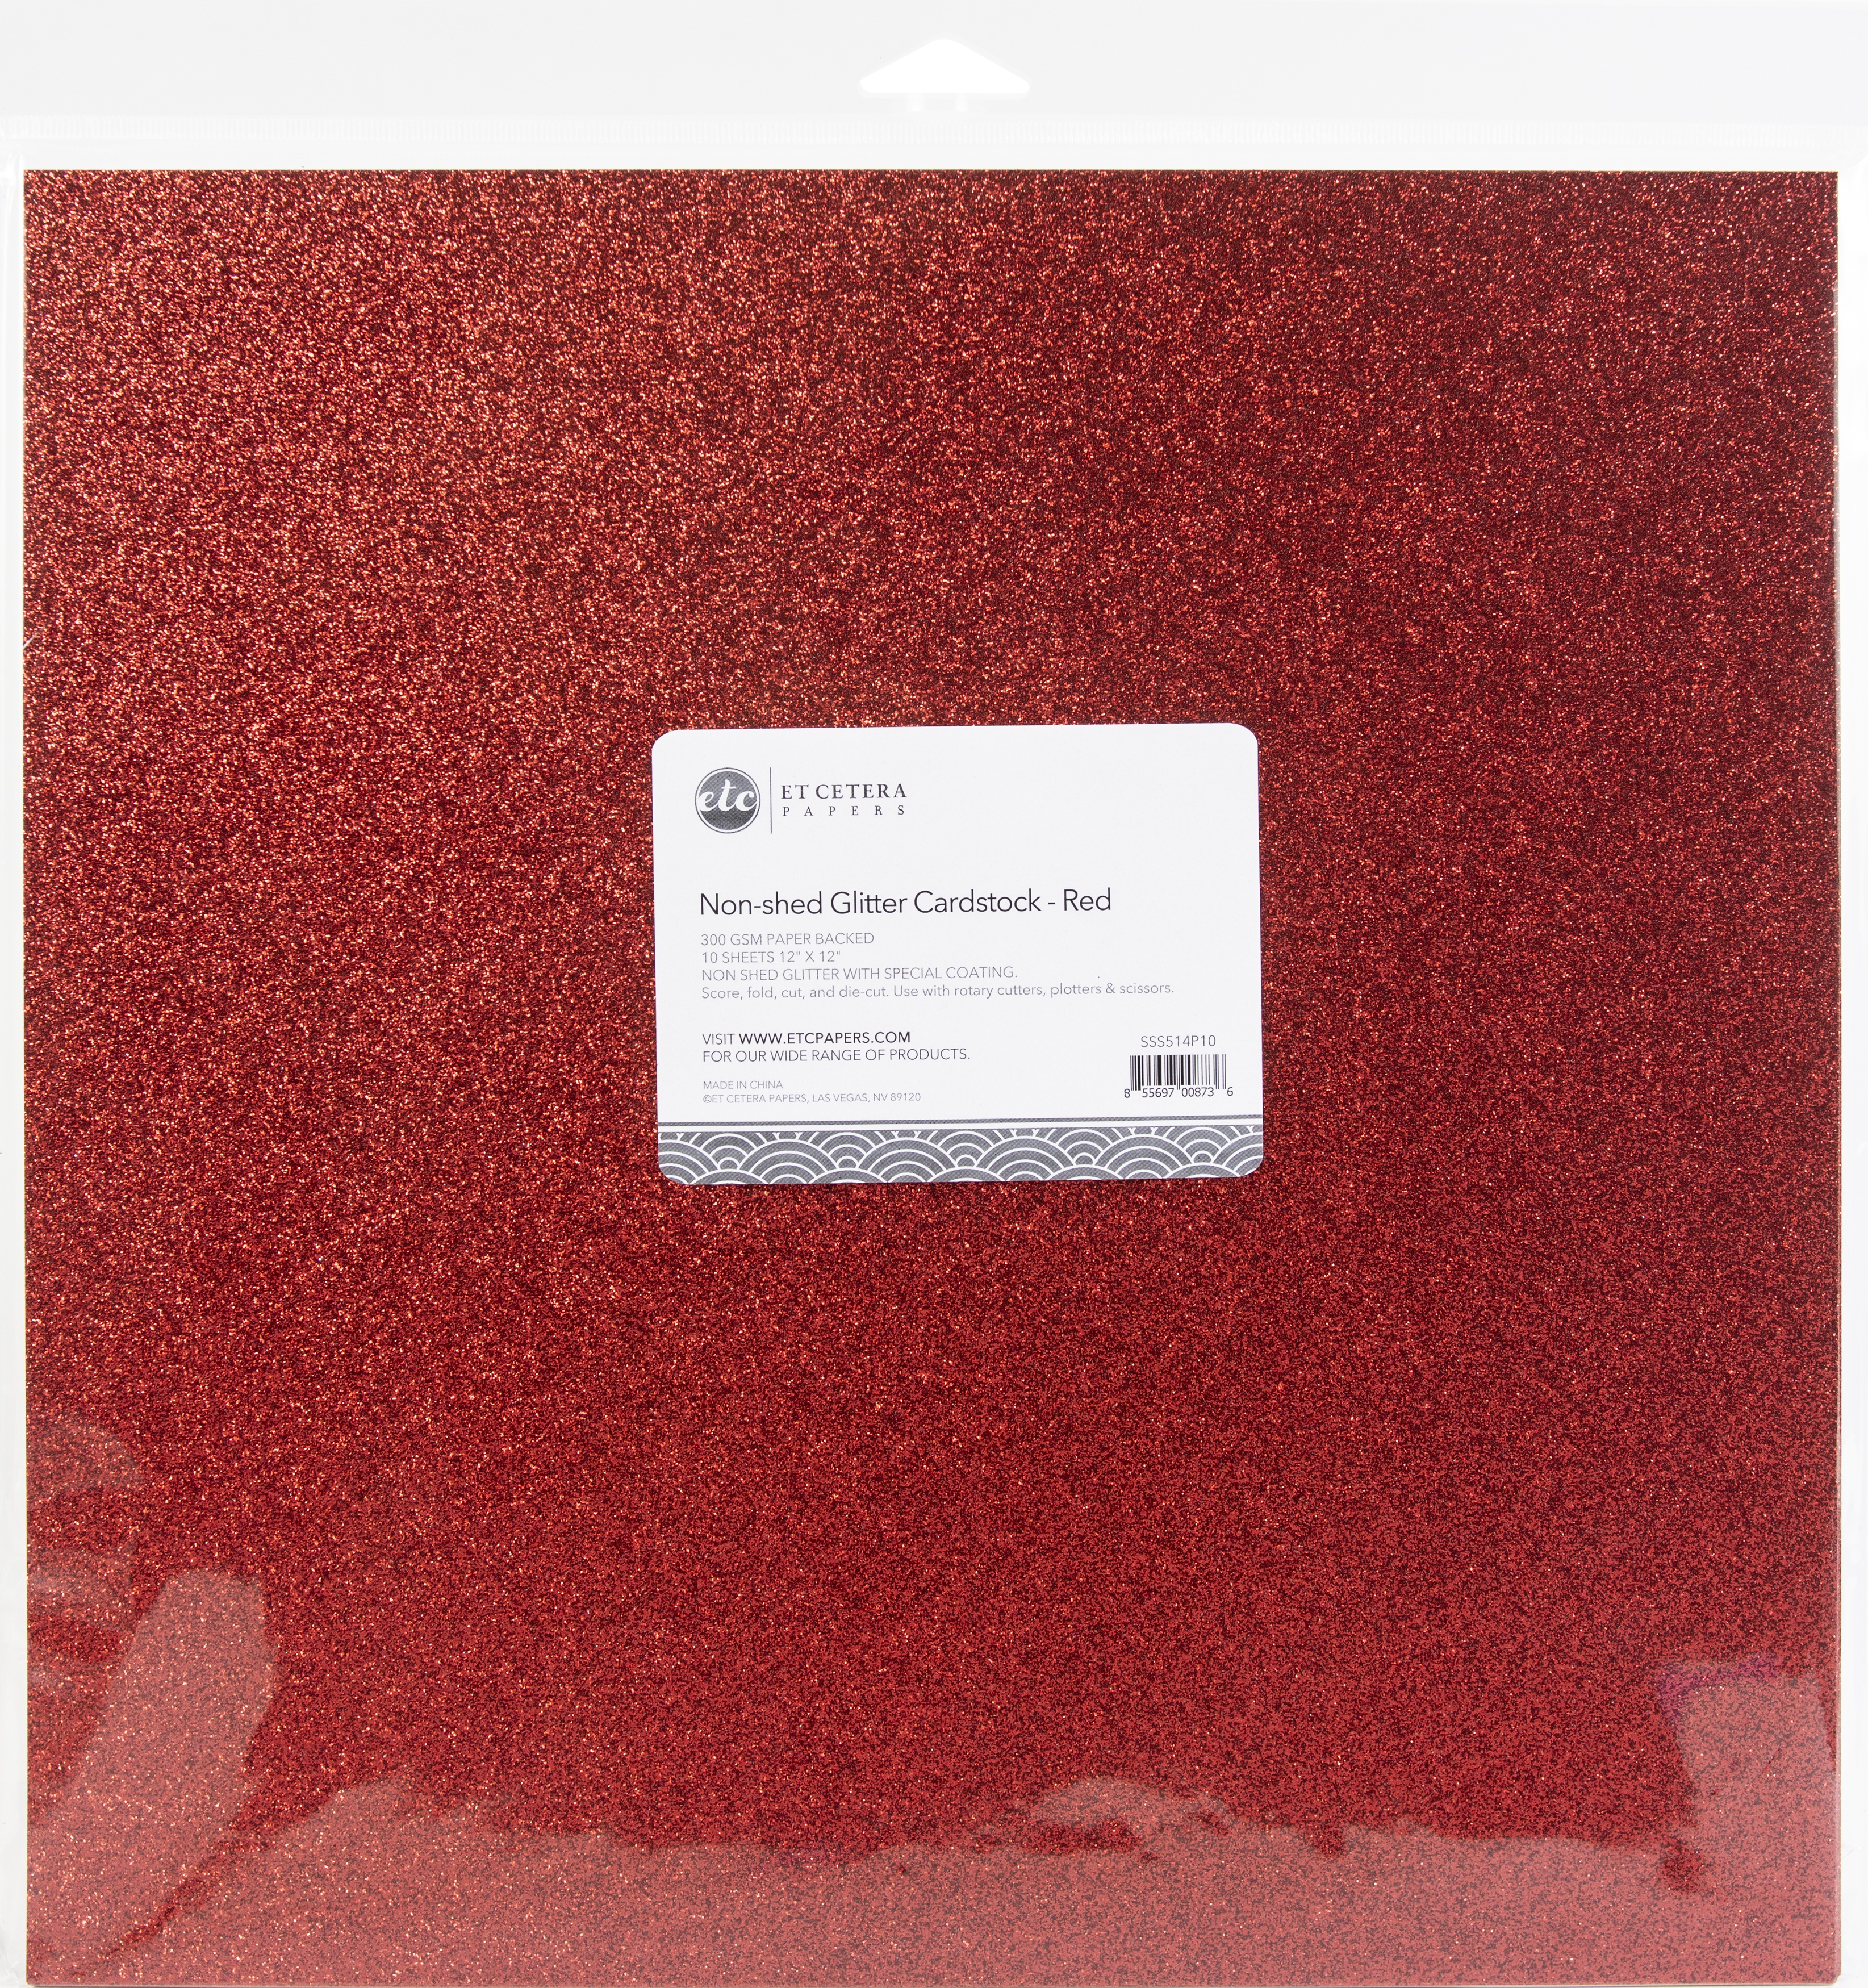 Non-Shed Glitter Cardstock - Red, 12x12